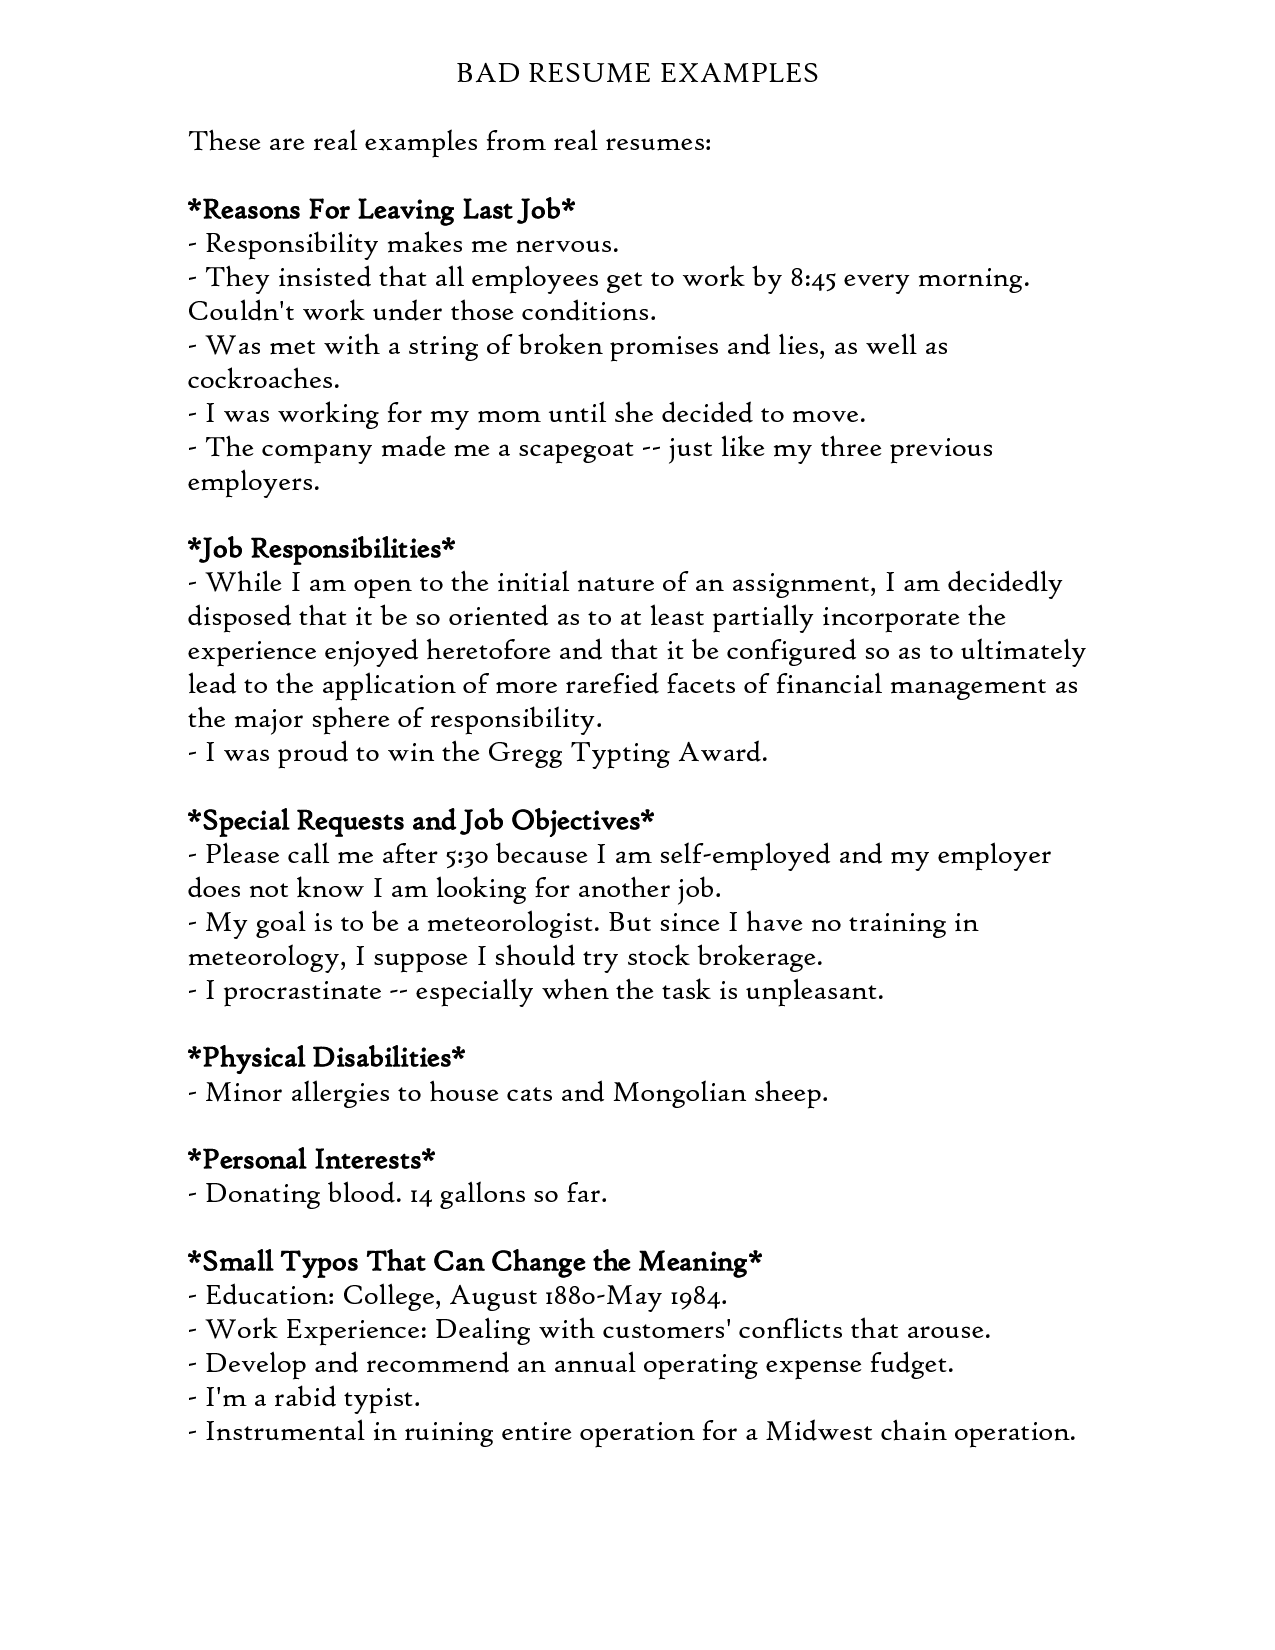 resume Resume Reason For Leaving A Job professional reasons for leaving a job top 10 you should i am uic student trying to transition the world